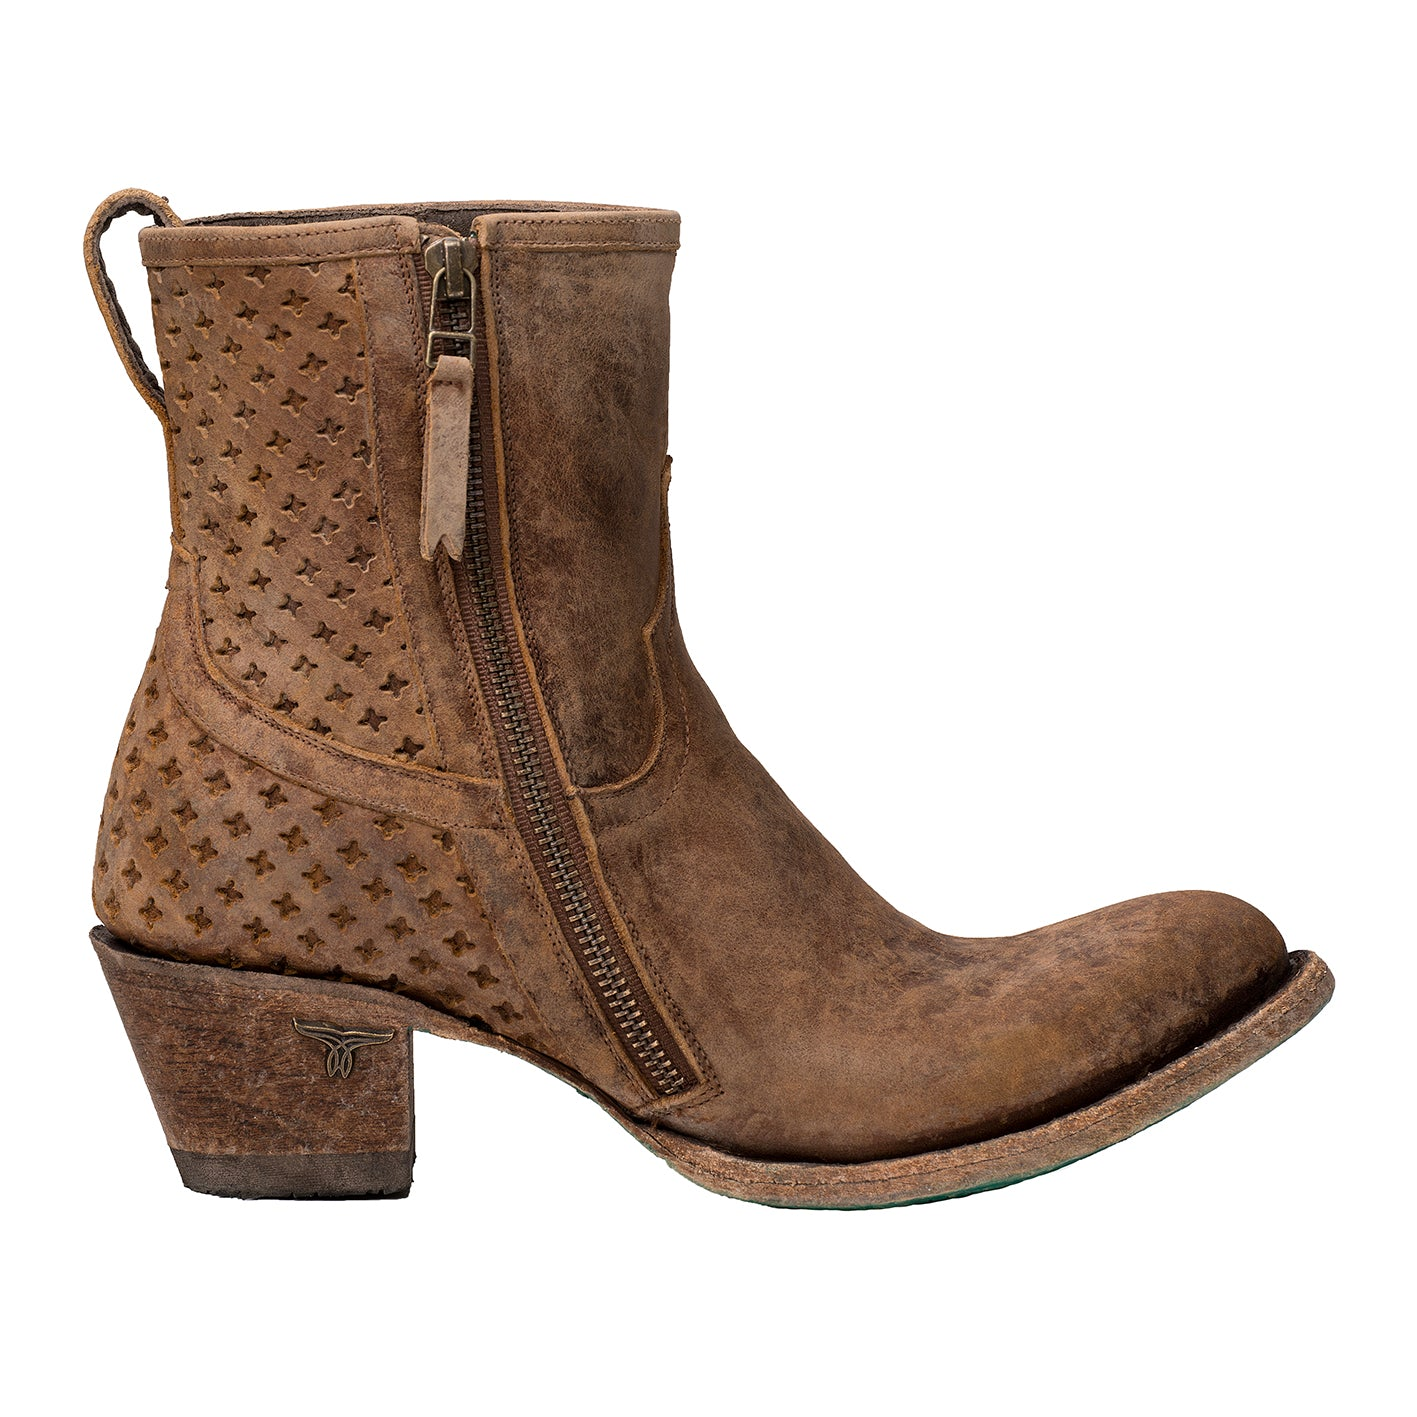 5addda82291a9 Shop for Womens and Mens Leather Boots, Footwear & Accessories